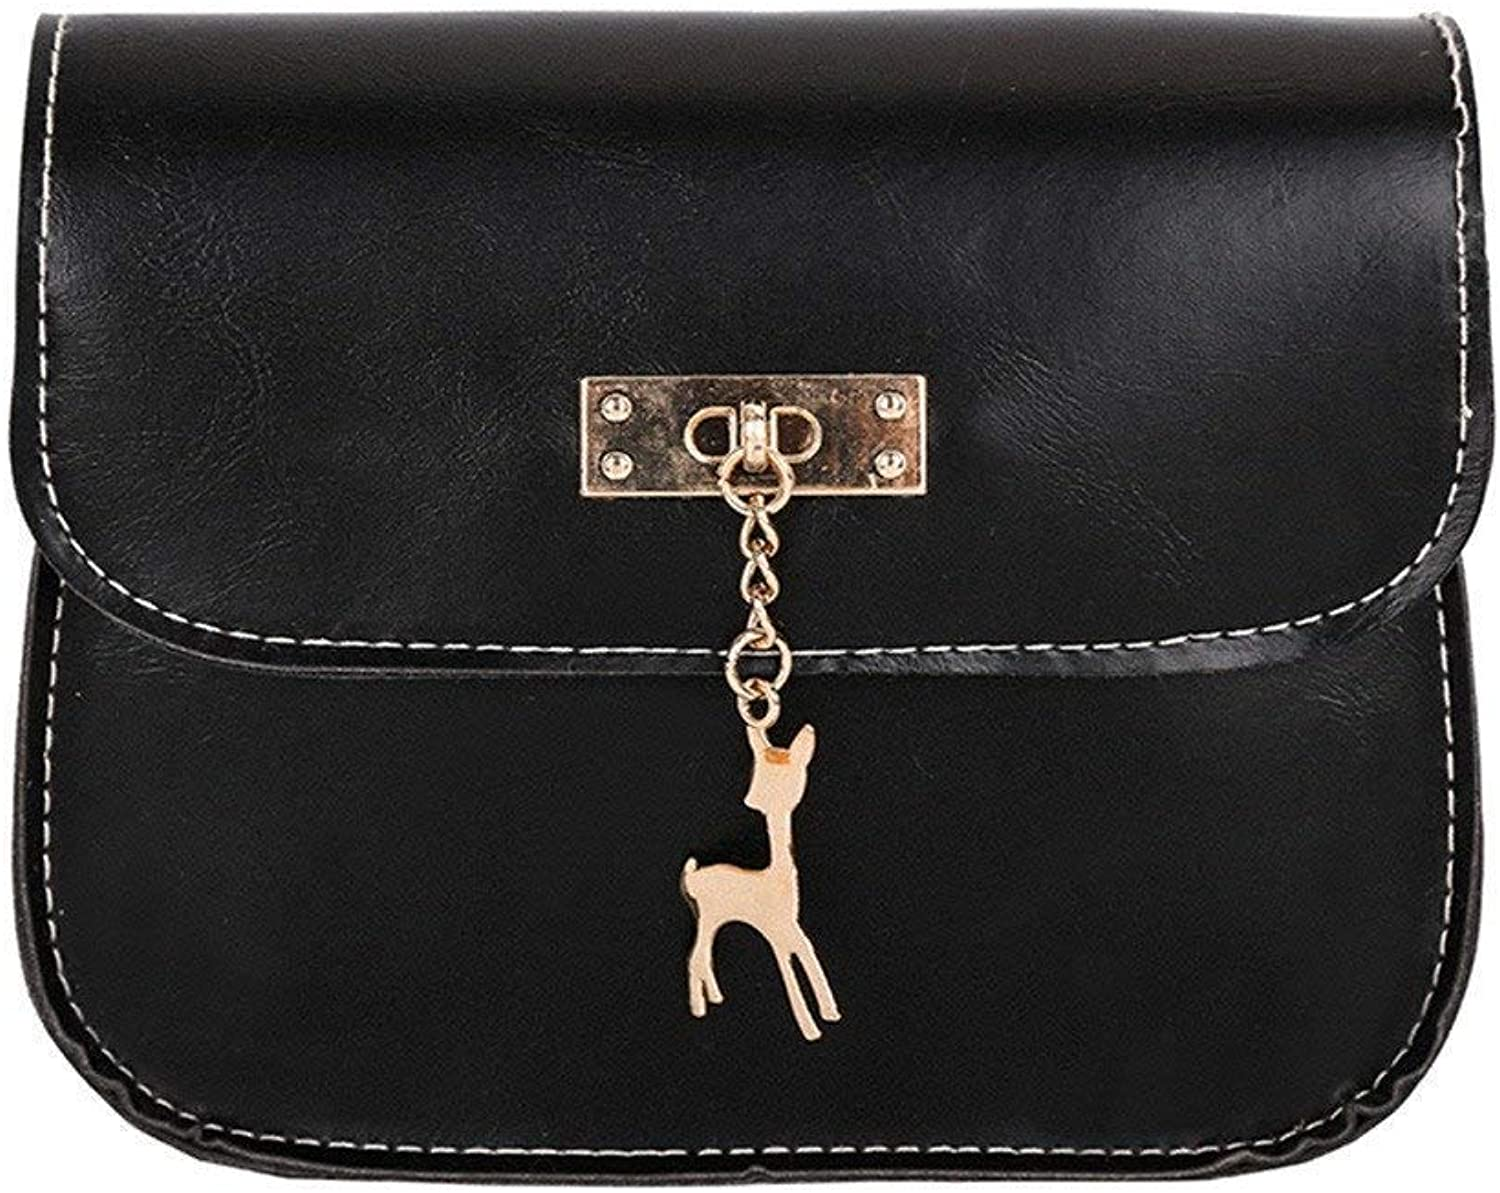 Bloomerang Womens Leather Crossbody Bag Small Deer Shoulder Bags Purse Messenger Bag Women's Handbags Totes Shoulder Bags bolsos muj 75 color Black Mini(Max Length 20cm)